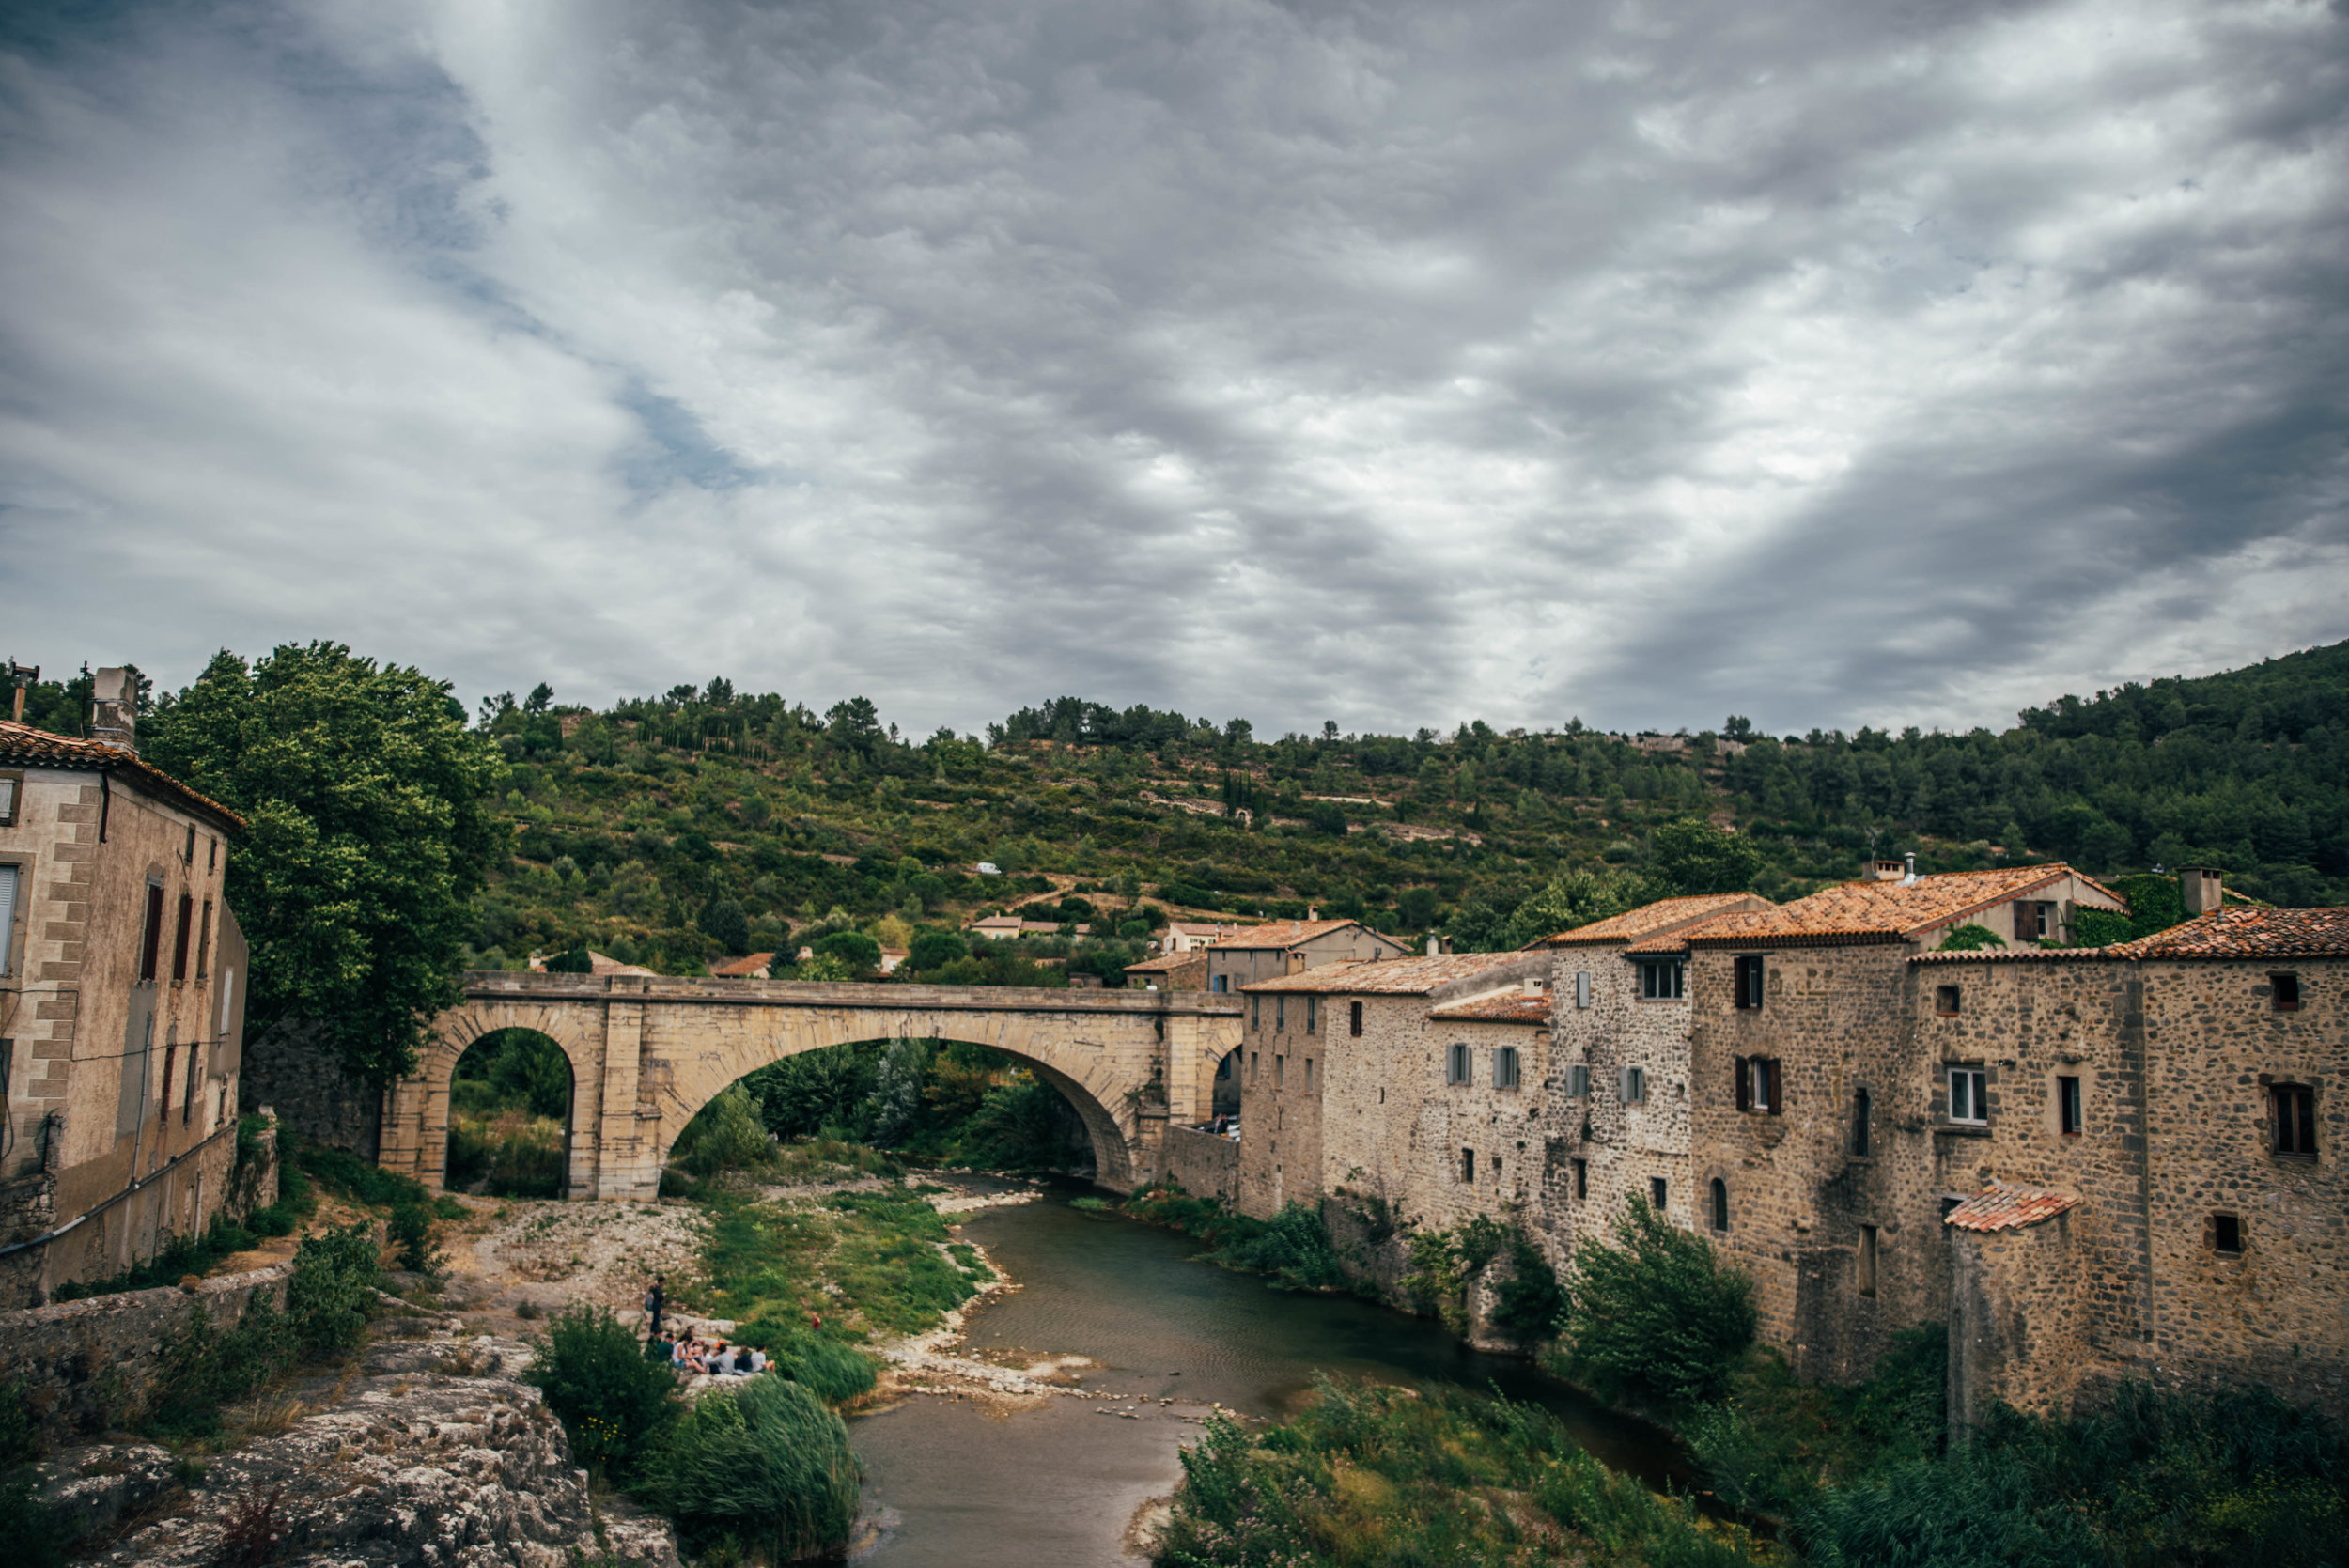 View of Lagrasse France from bridge over river Essex UK Documentary Photographer